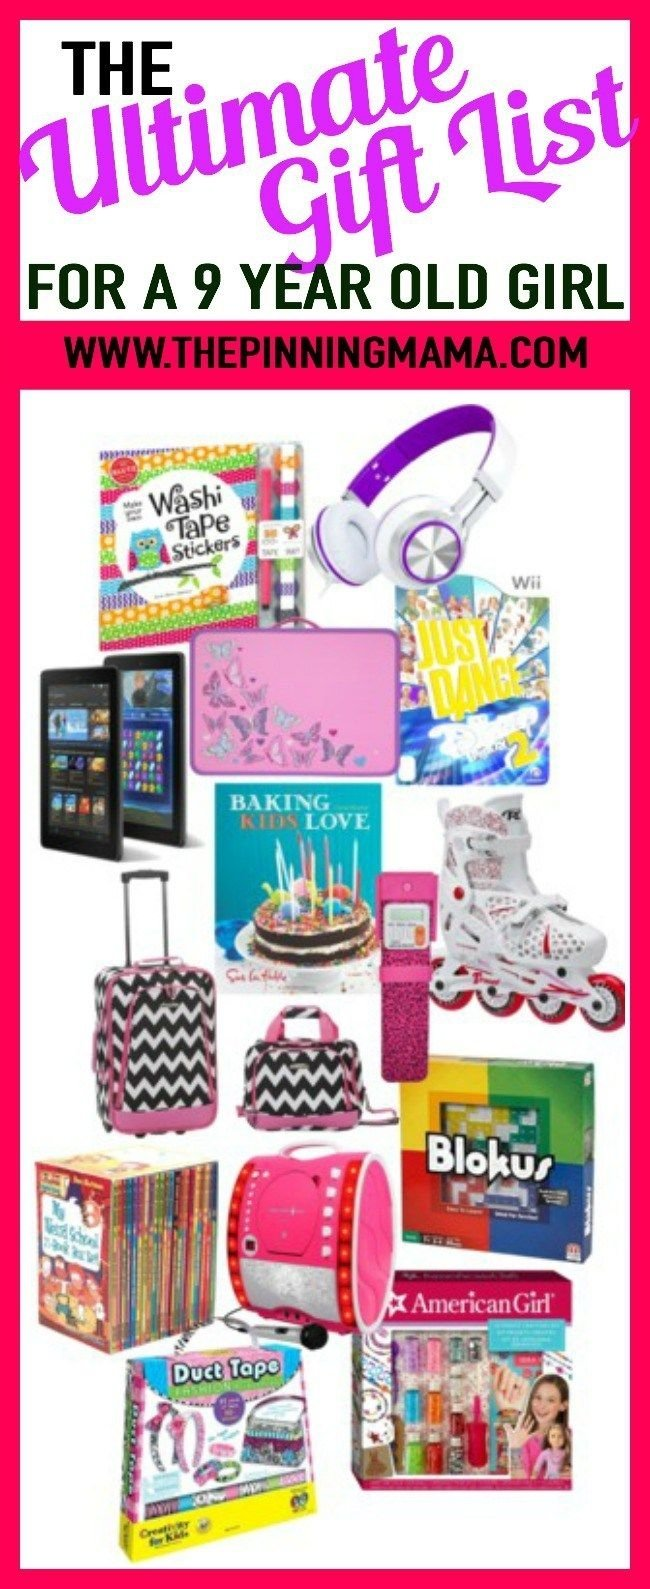 10 Attractive Gift Ideas For 11 Year Old Girl the ultimate gift list for a 9 year old girl top toys girls age 9 2 2020